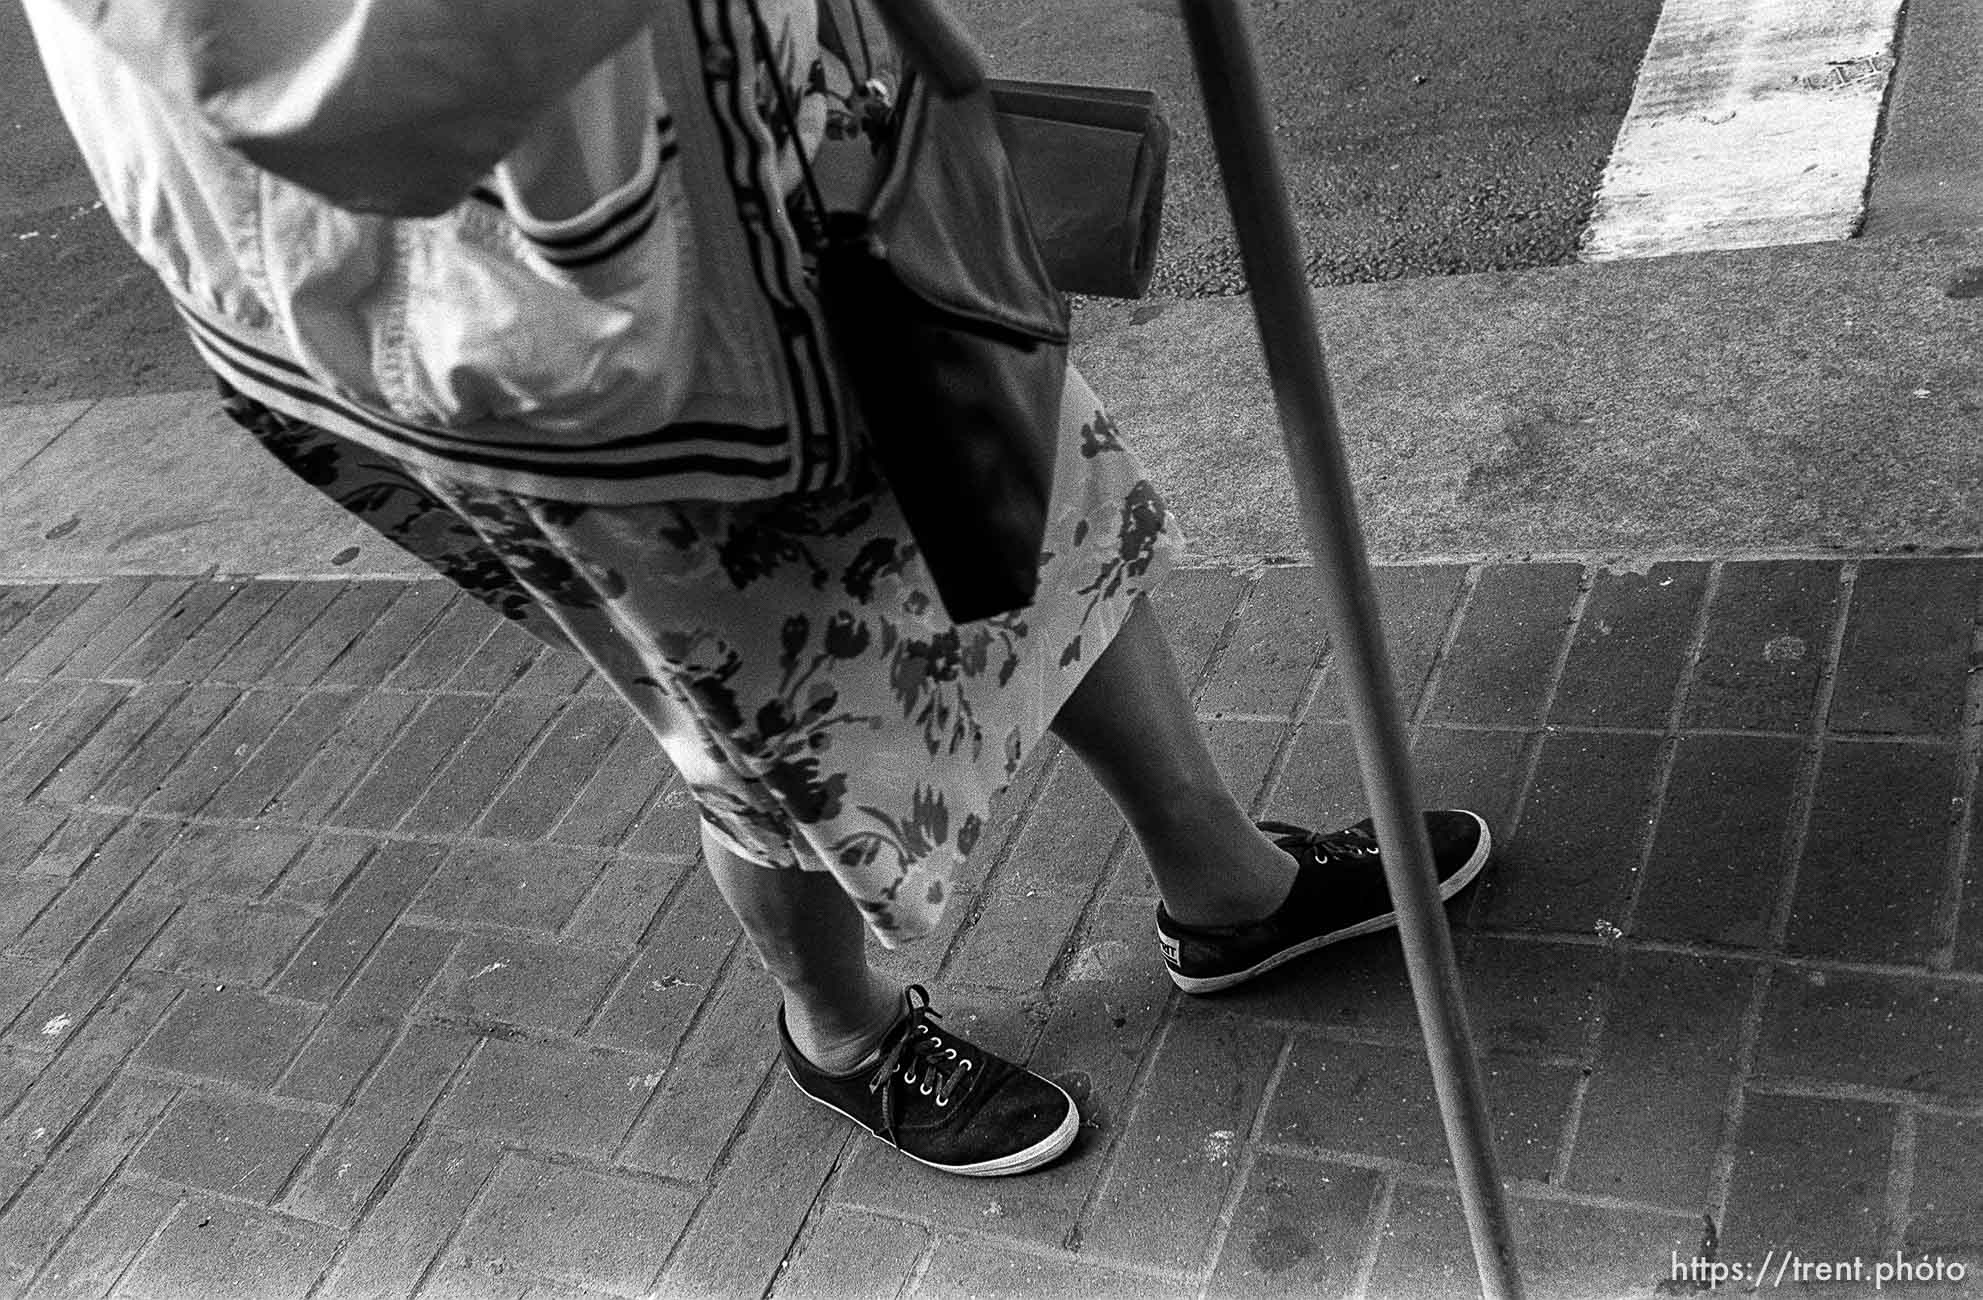 Old woman's legs with cane. Leica hip shots on the street.